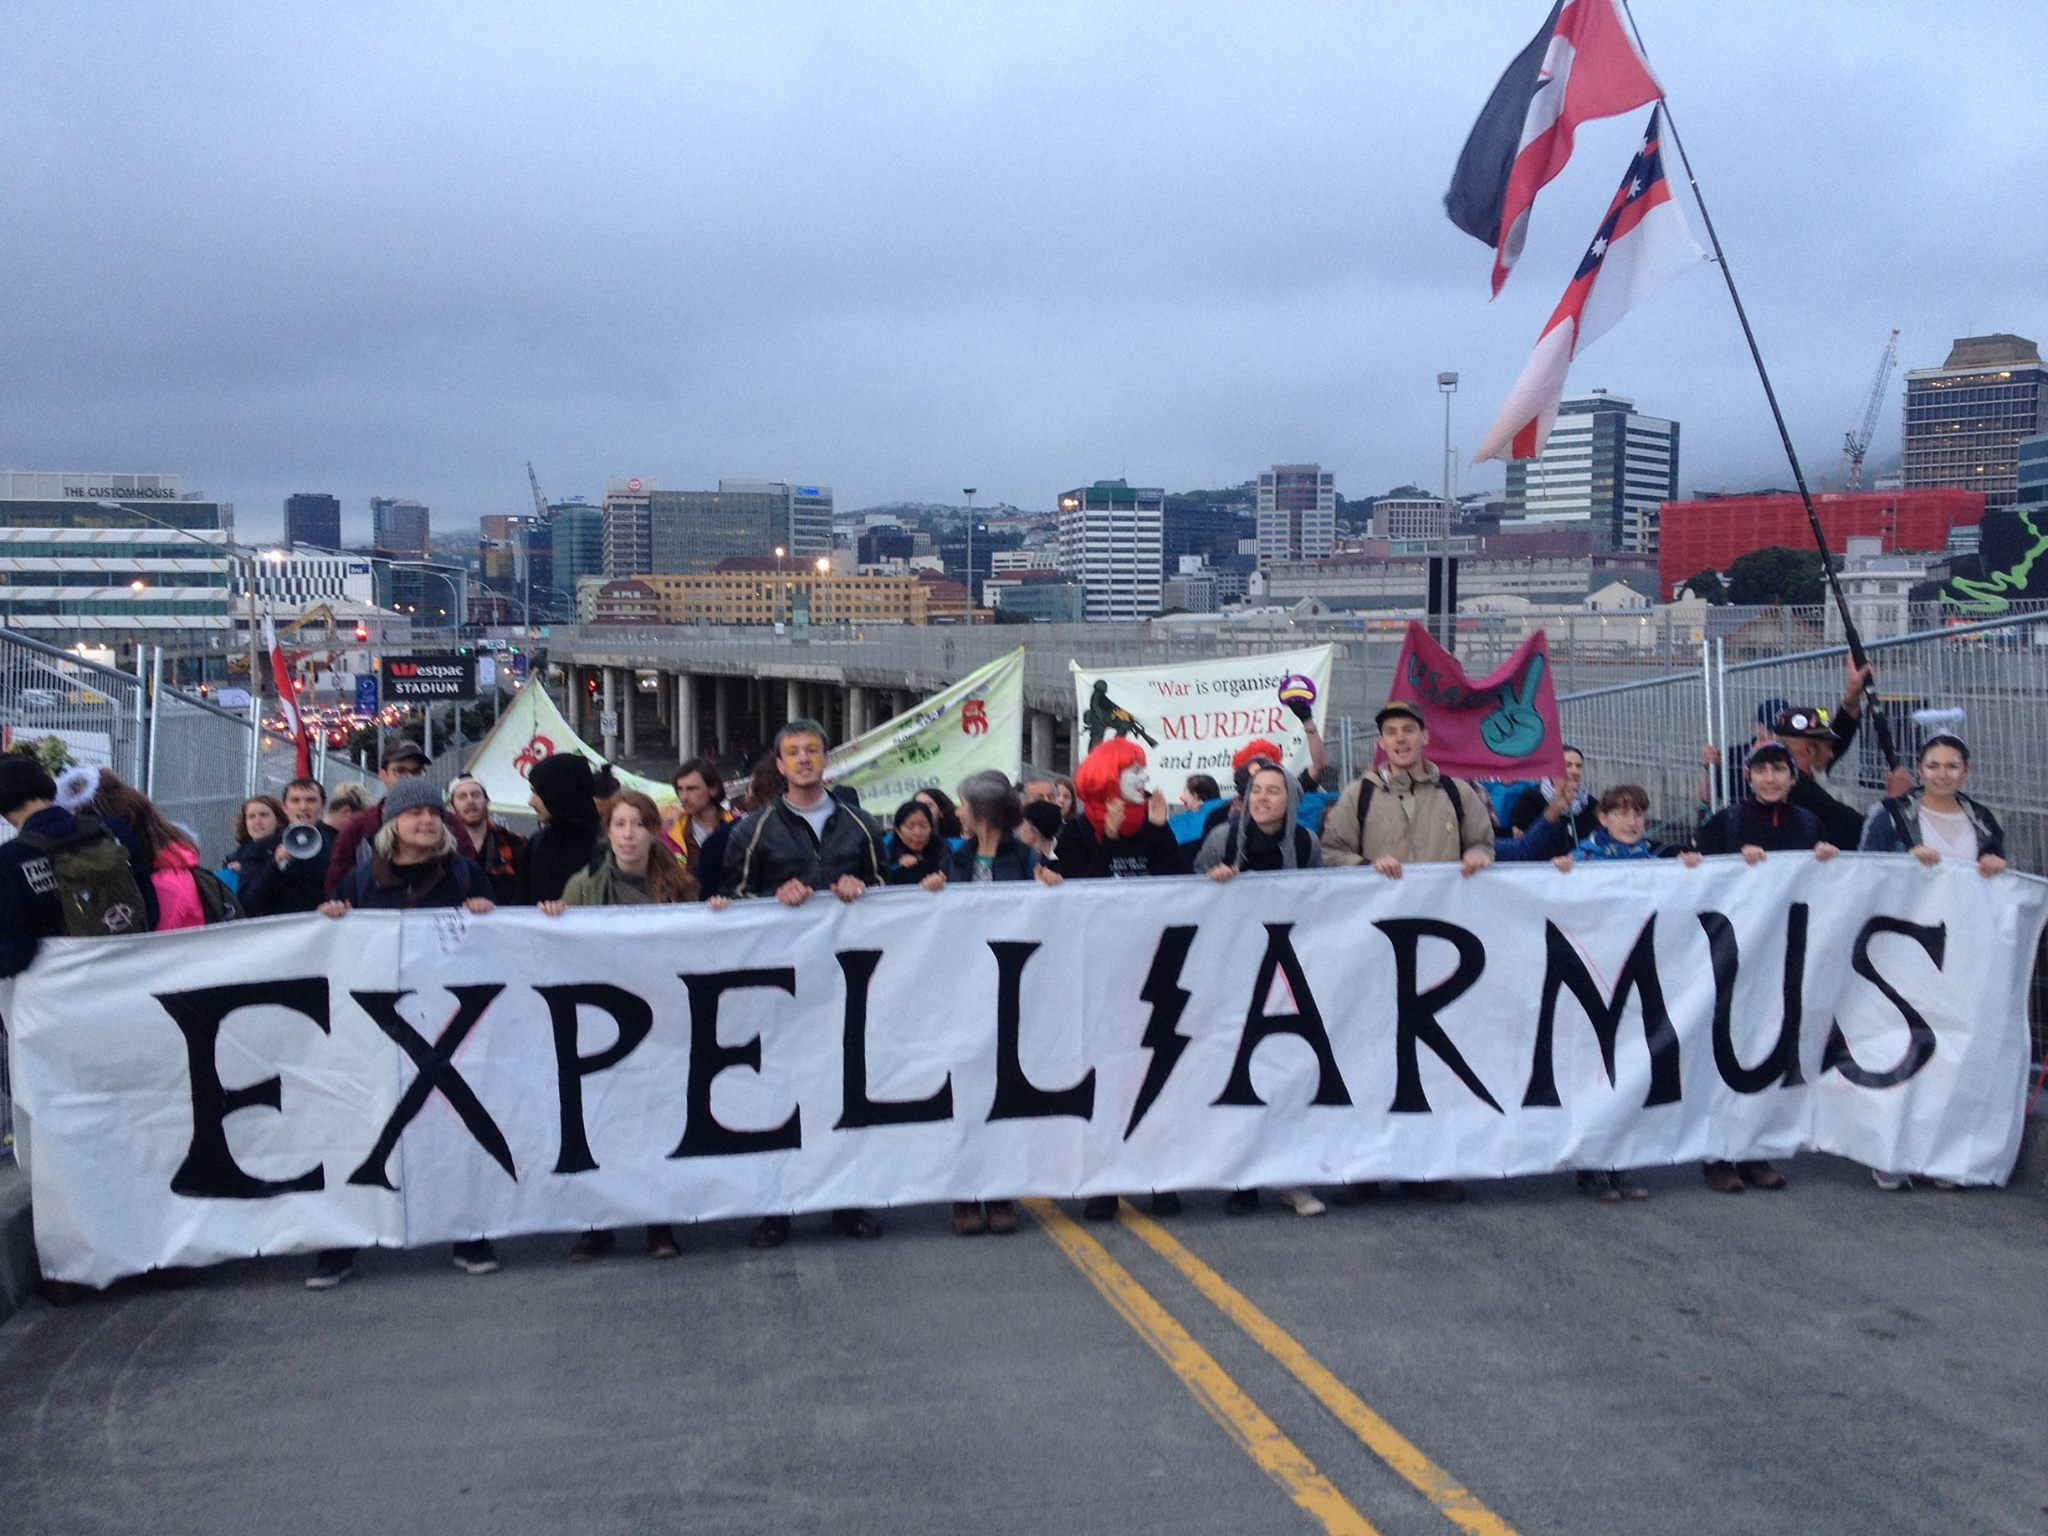 """A number of protesters holding a sign that says """"Expelliarmus!"""""""